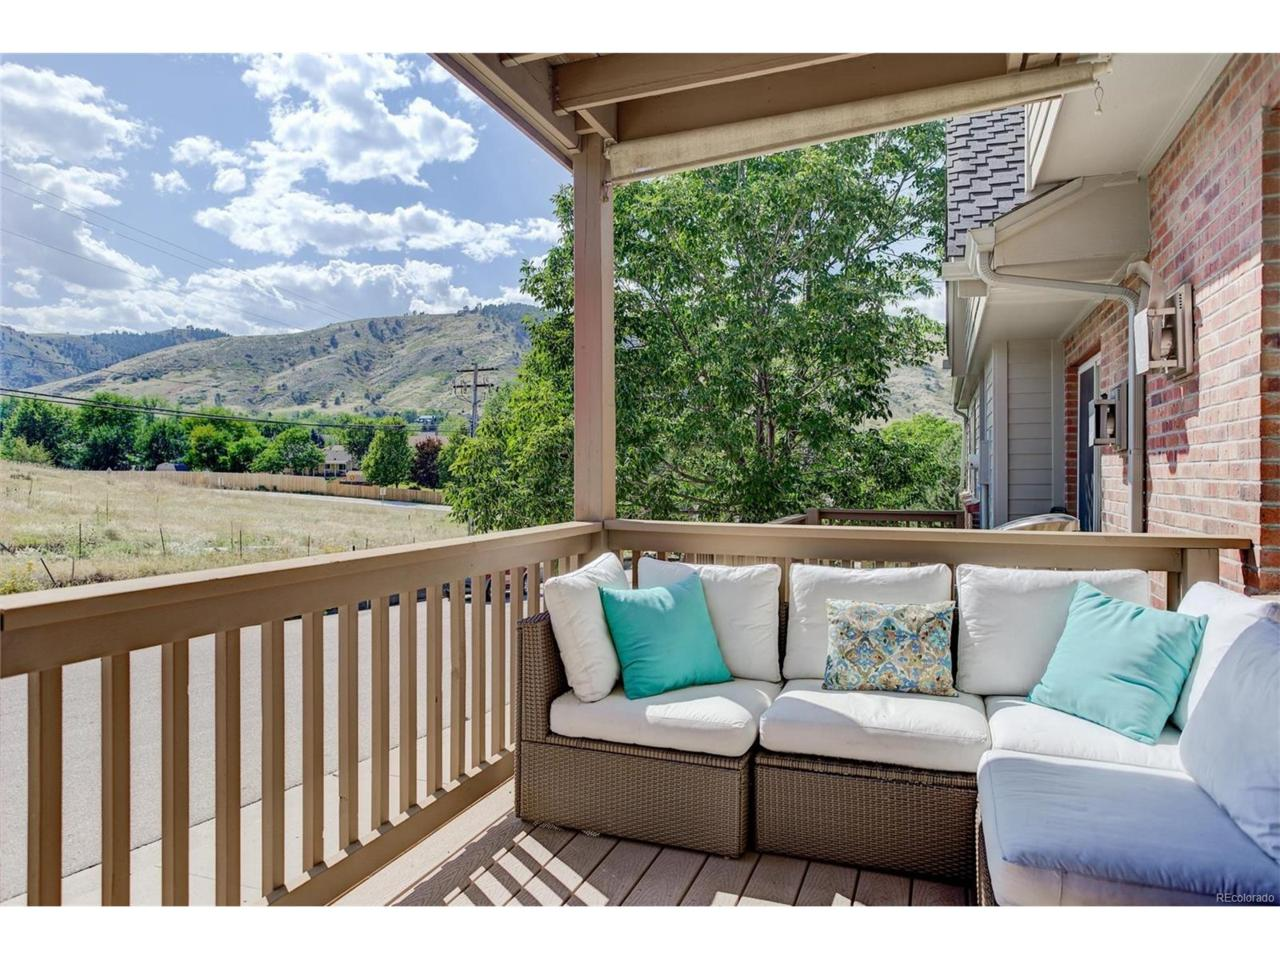 18508 W 4th Place, Golden, CO 80401 (MLS #9711804) :: 8z Real Estate